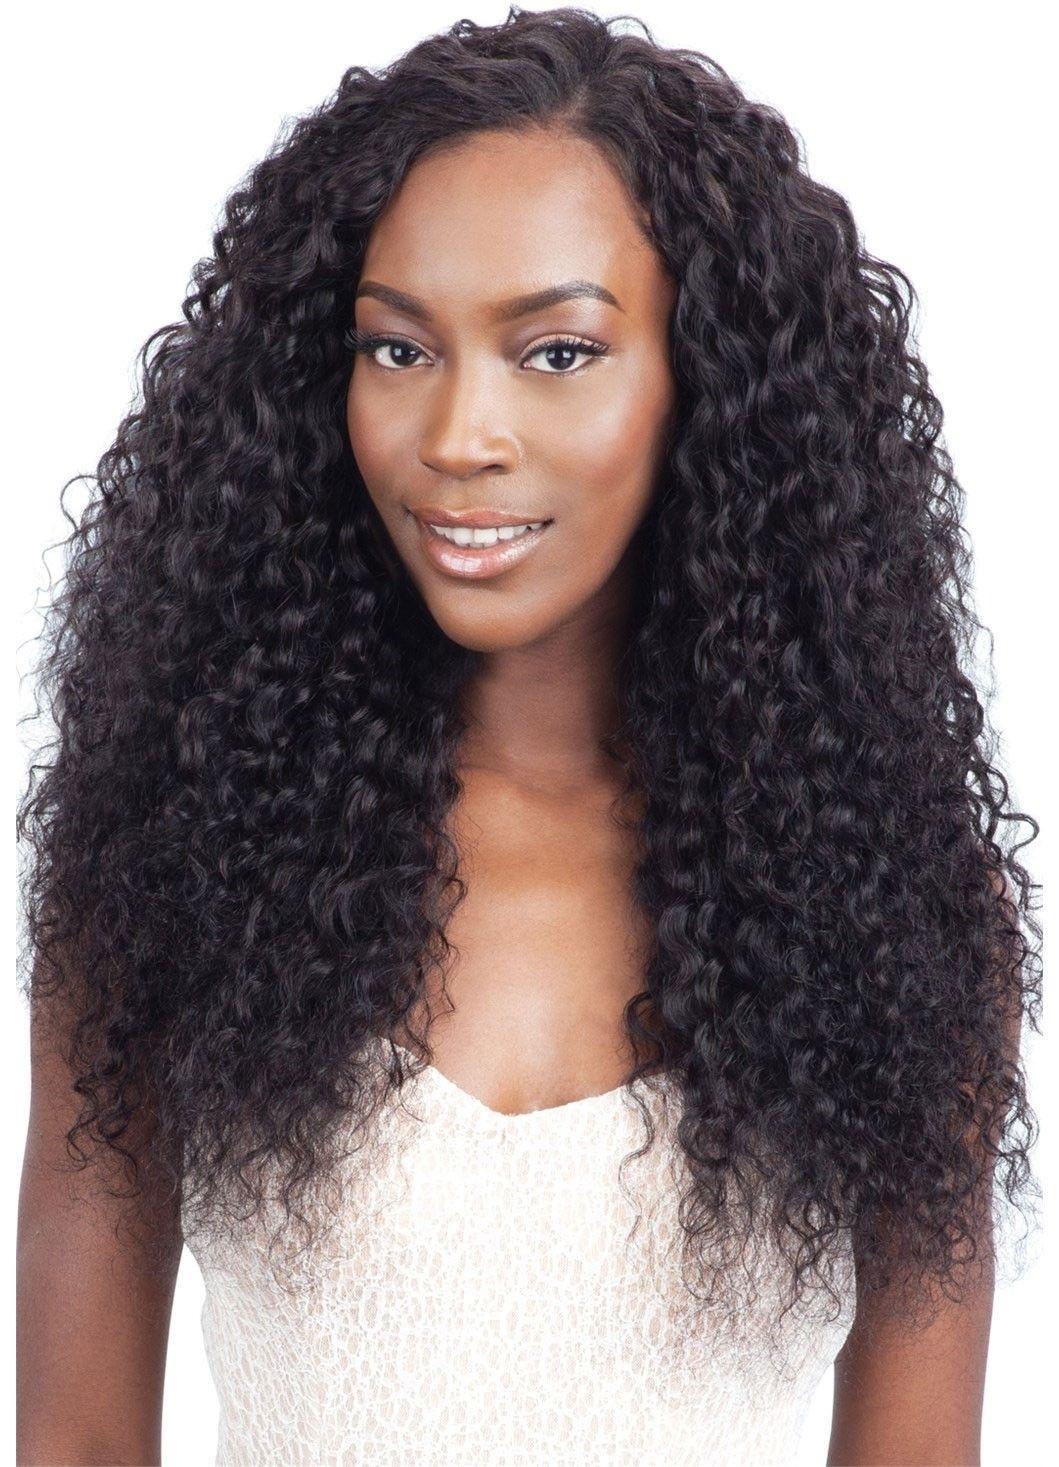 Model Fresh Wet Wavy Human Hair Brazilian Virgin Remy Deep Wave Can Be Straightened With Flat Iron And Wash It For A Natural Way Curl